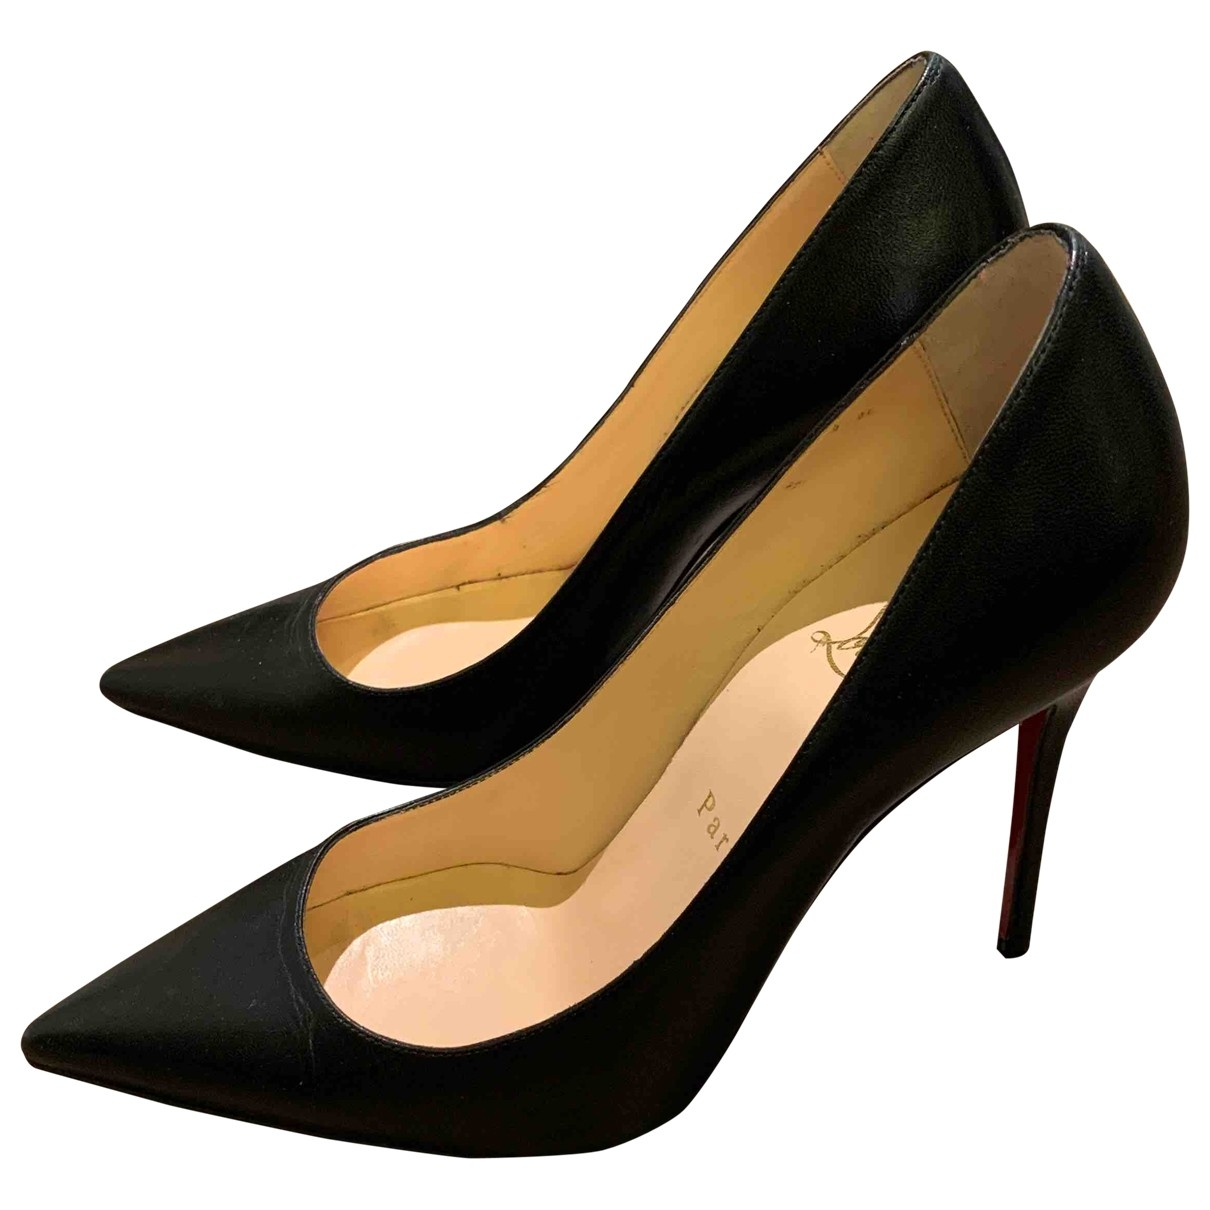 Christian Louboutin Pigalle Black Leather Heels for Women 36 EU